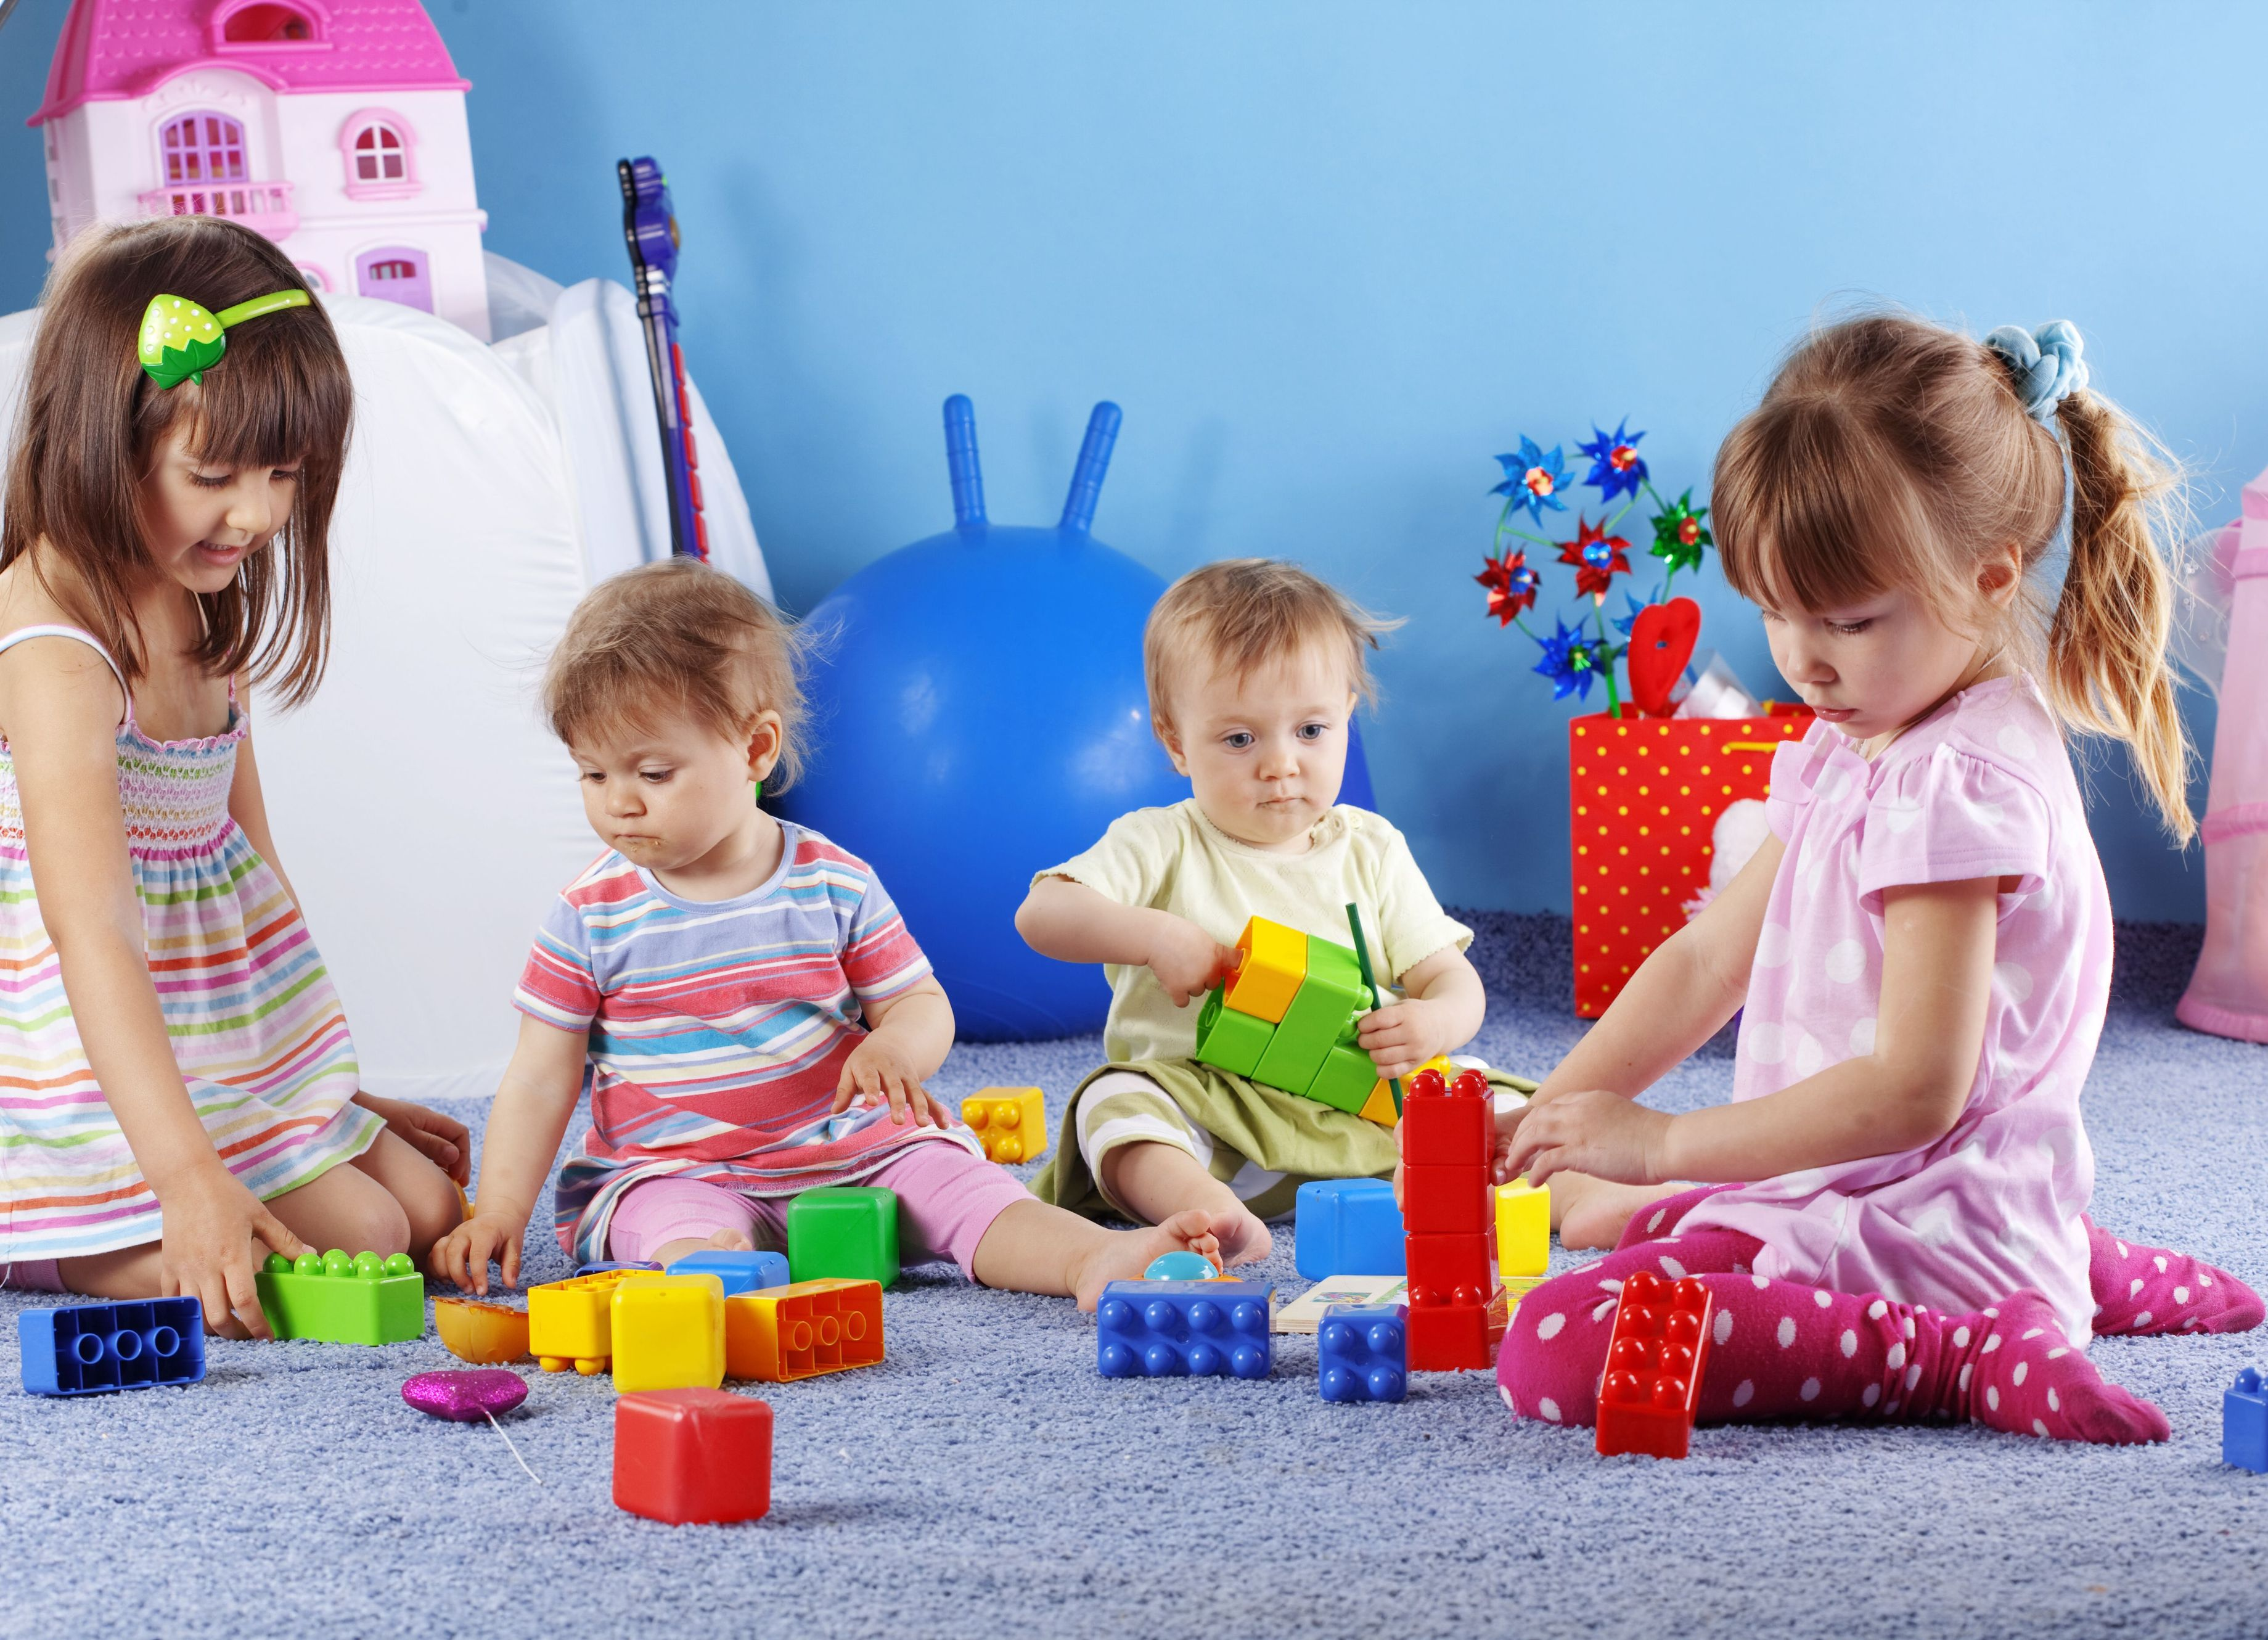 childs day care center - HD3679×2660